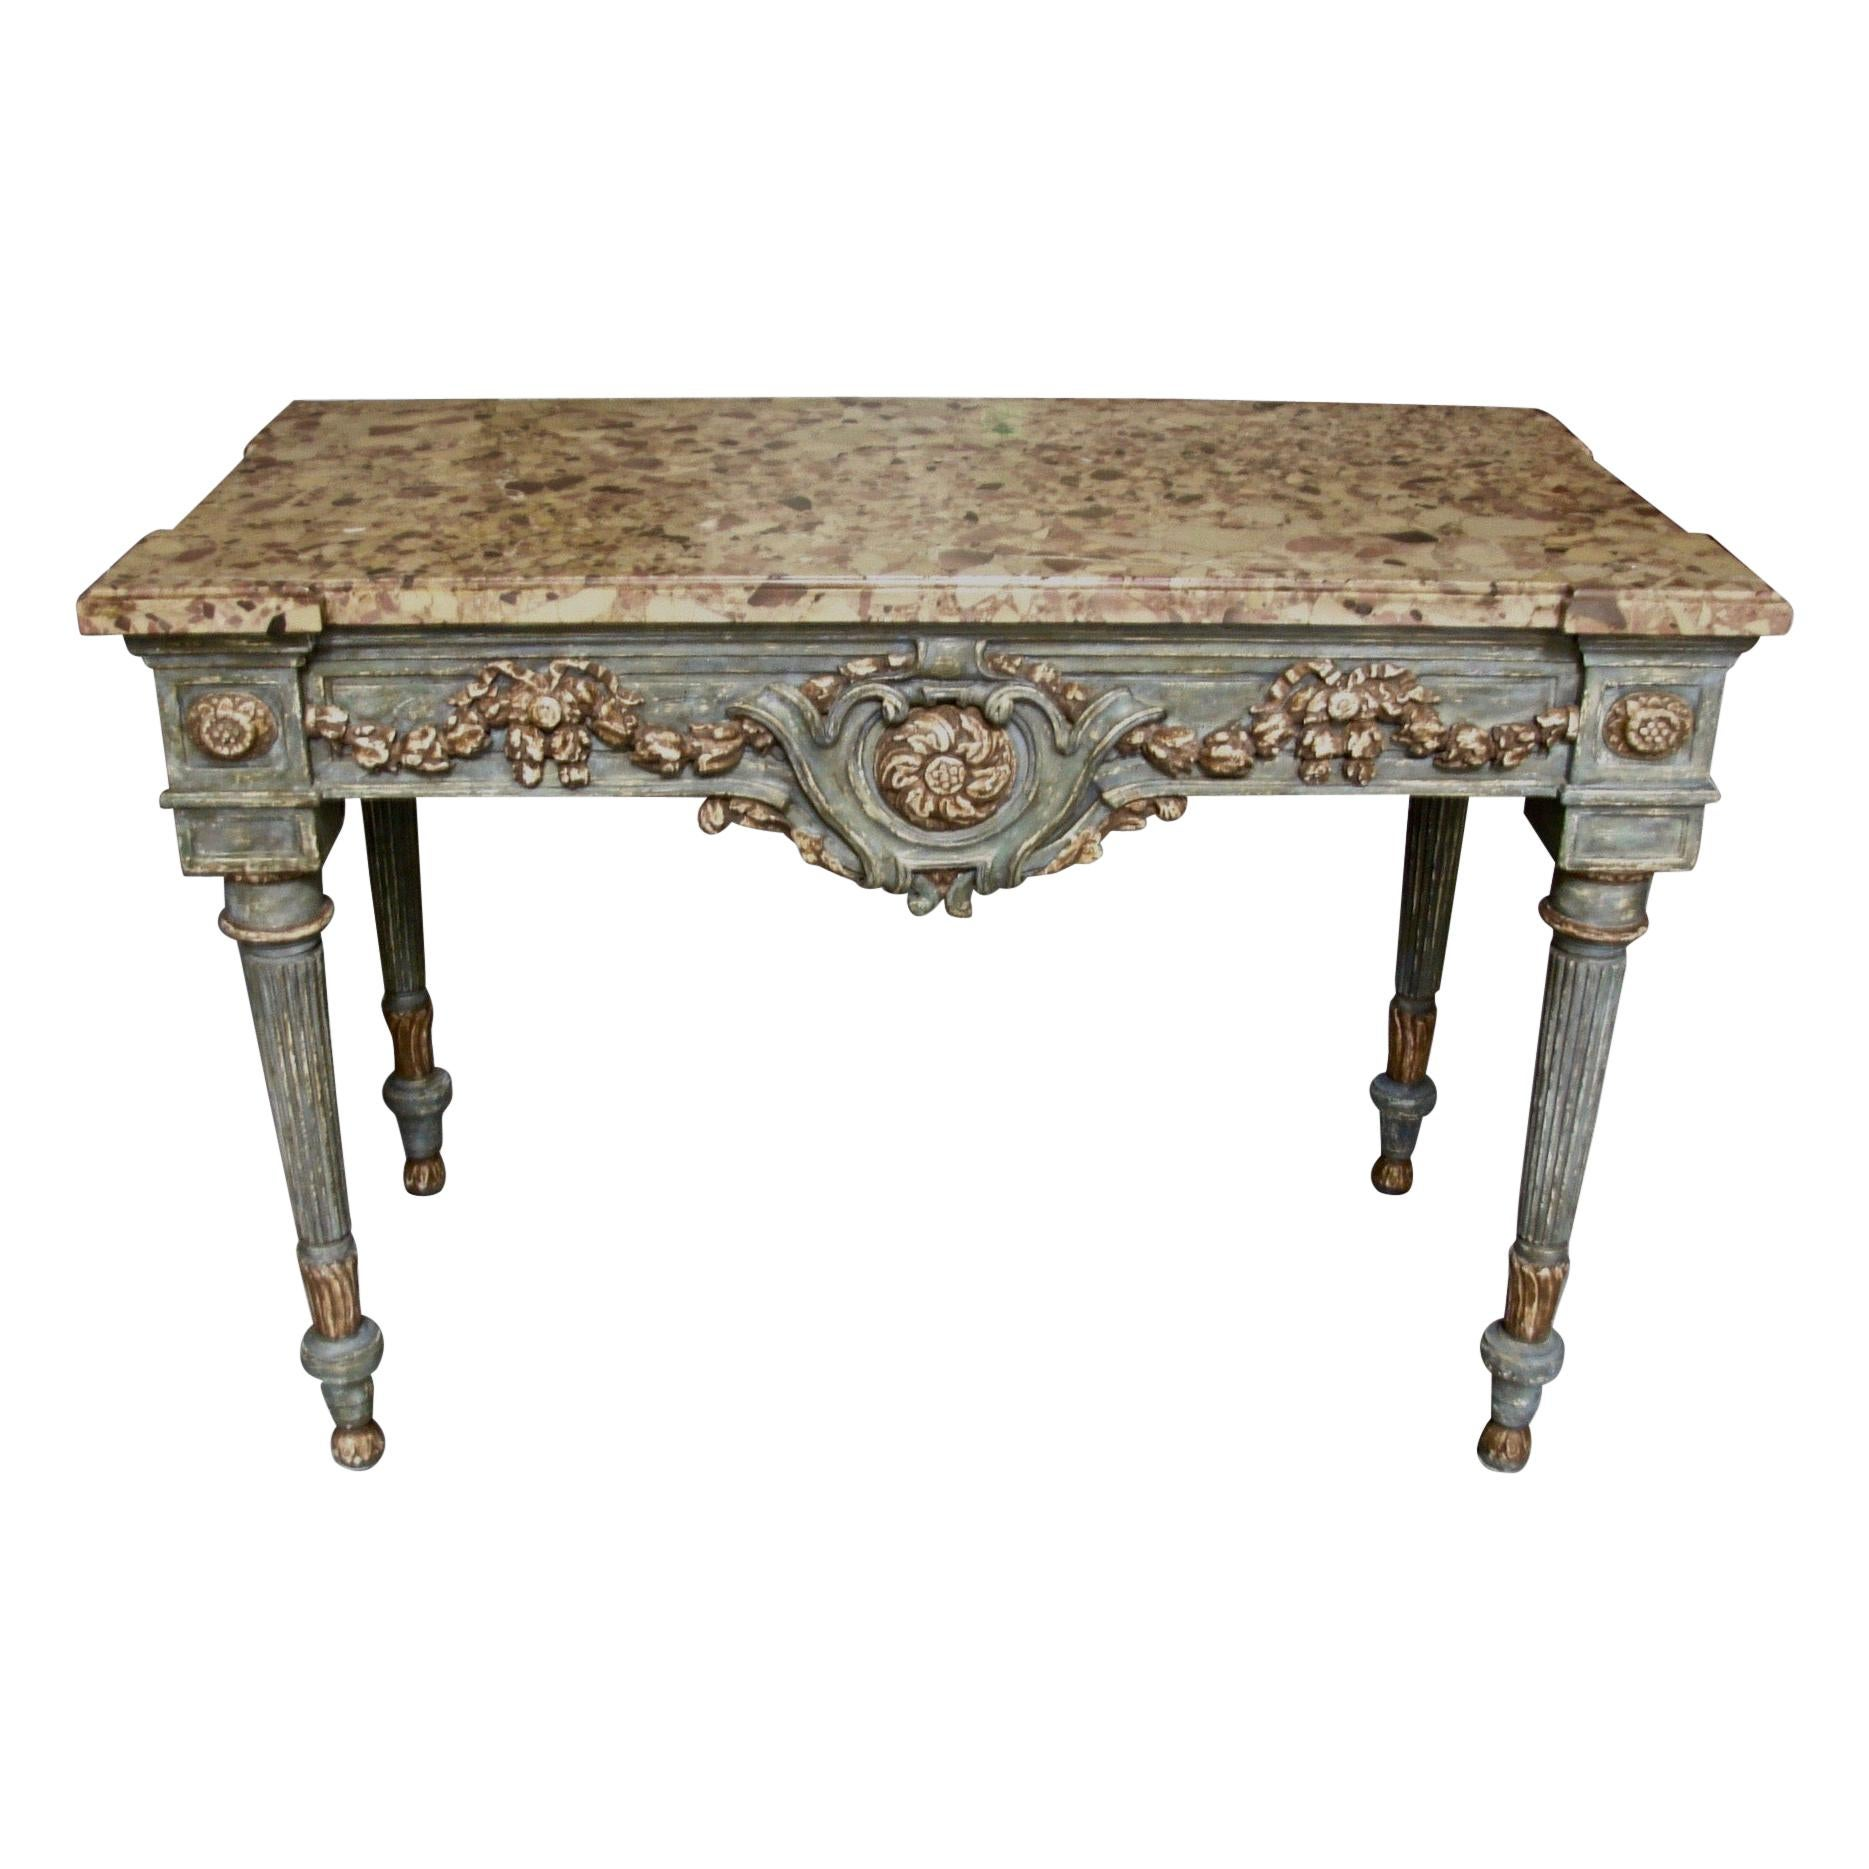 Italian Neoclassical Cream and Grey Painted Marble Top Console Table